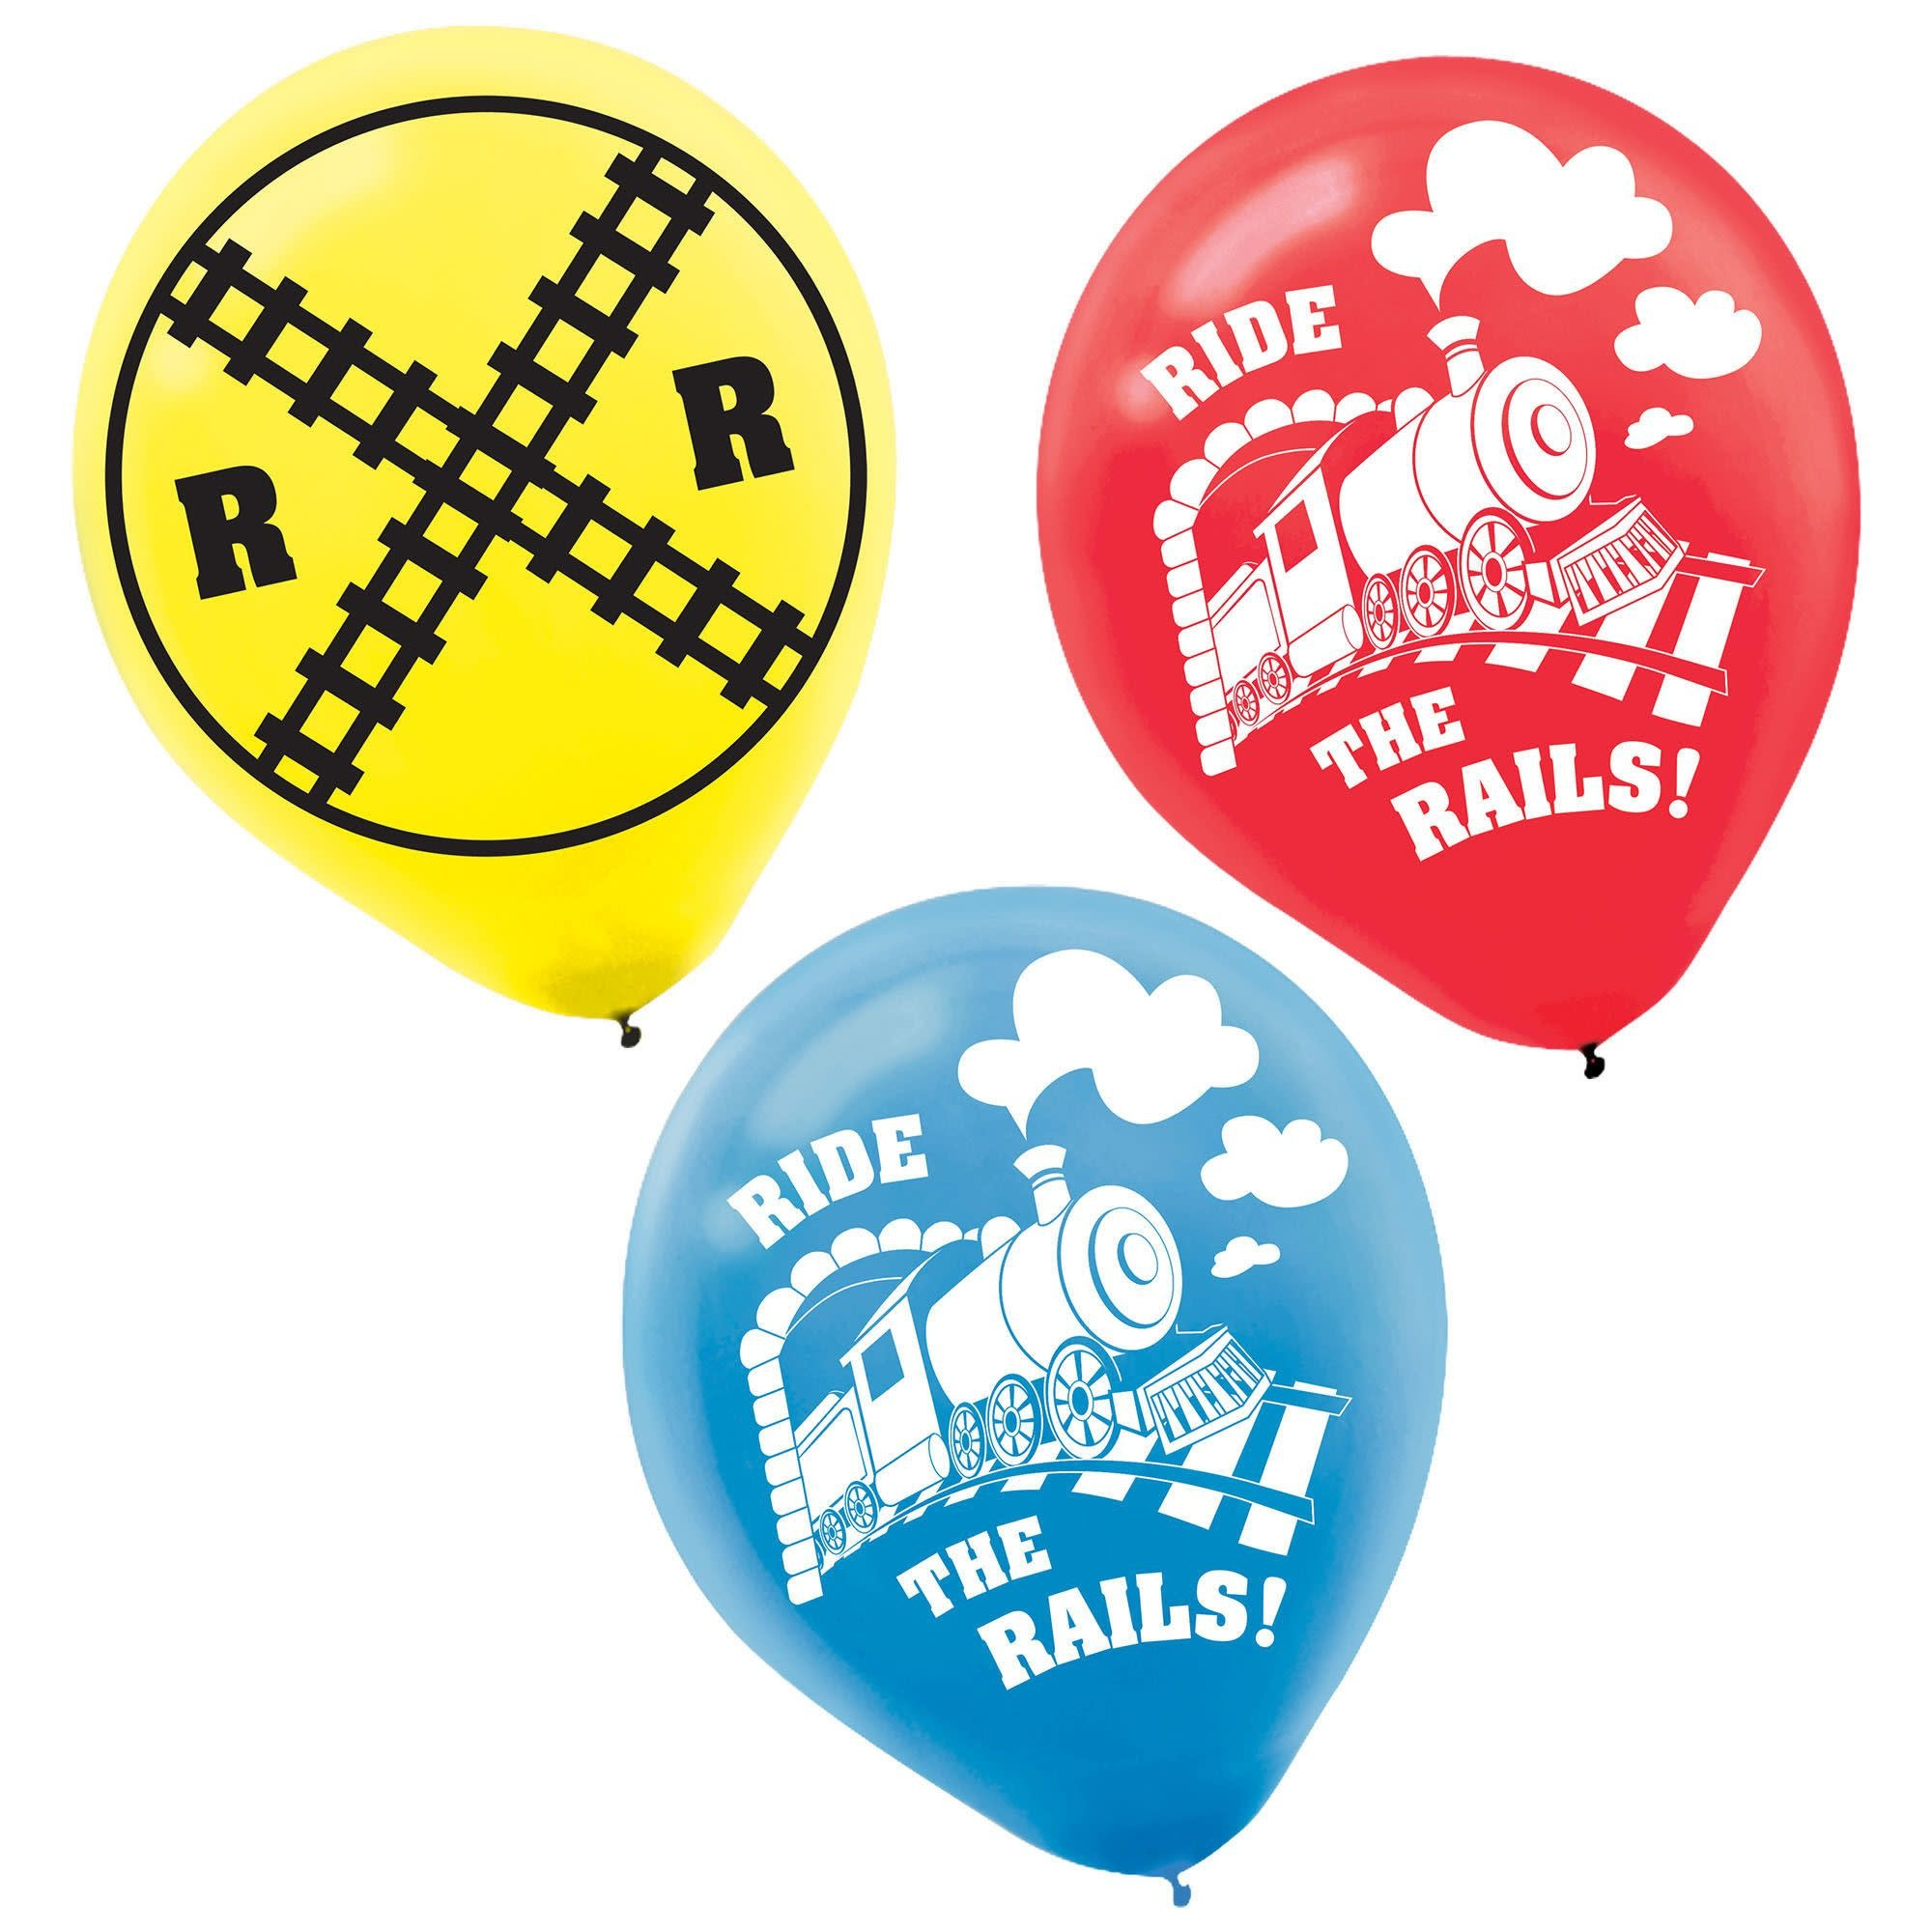 Thomas All Aboard Printed Latex Balloons- 6 Count (Latex Only)